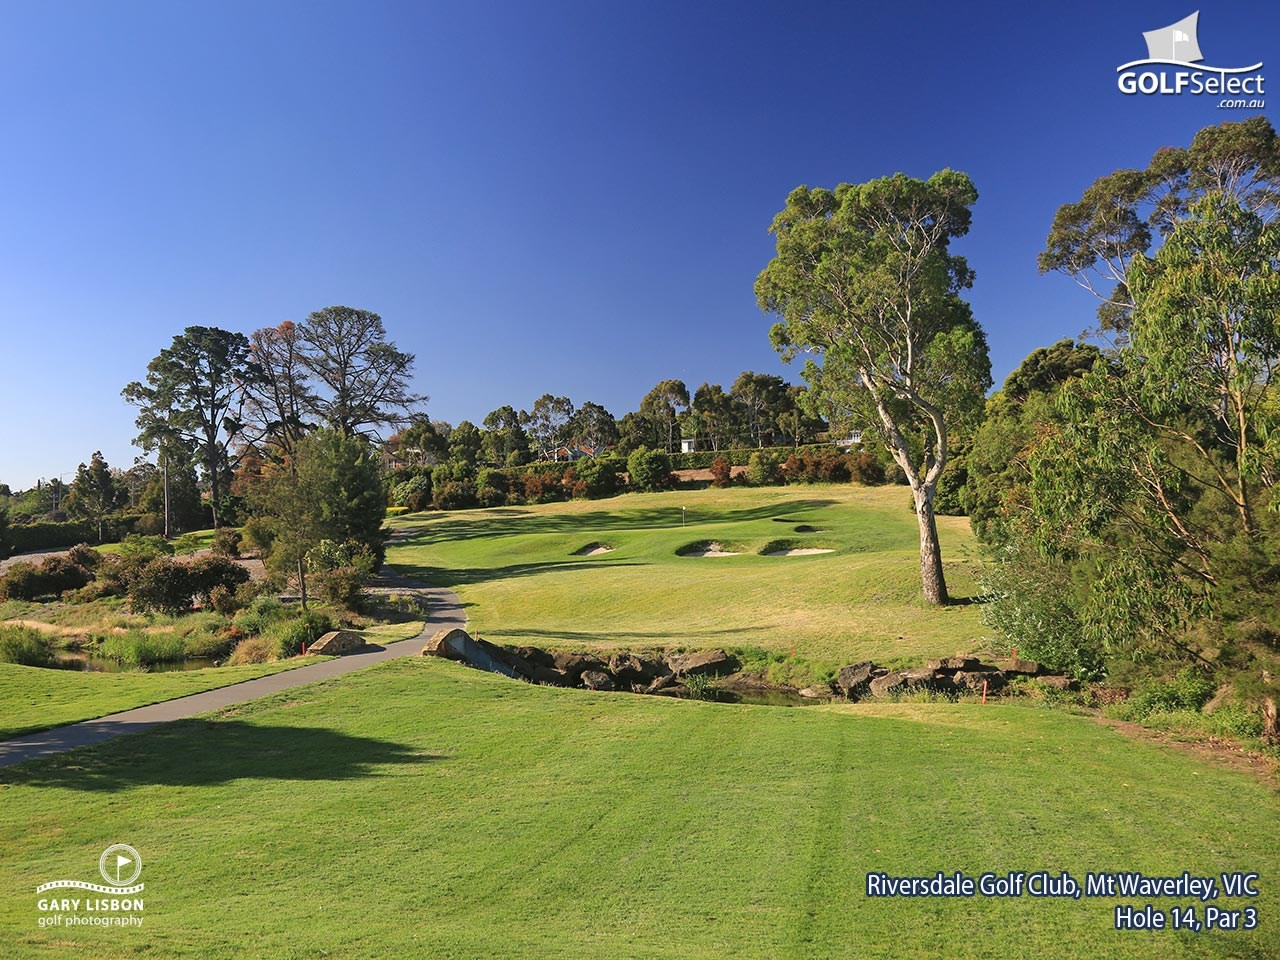 Riversdale Golf Club Hole 14, Par 3